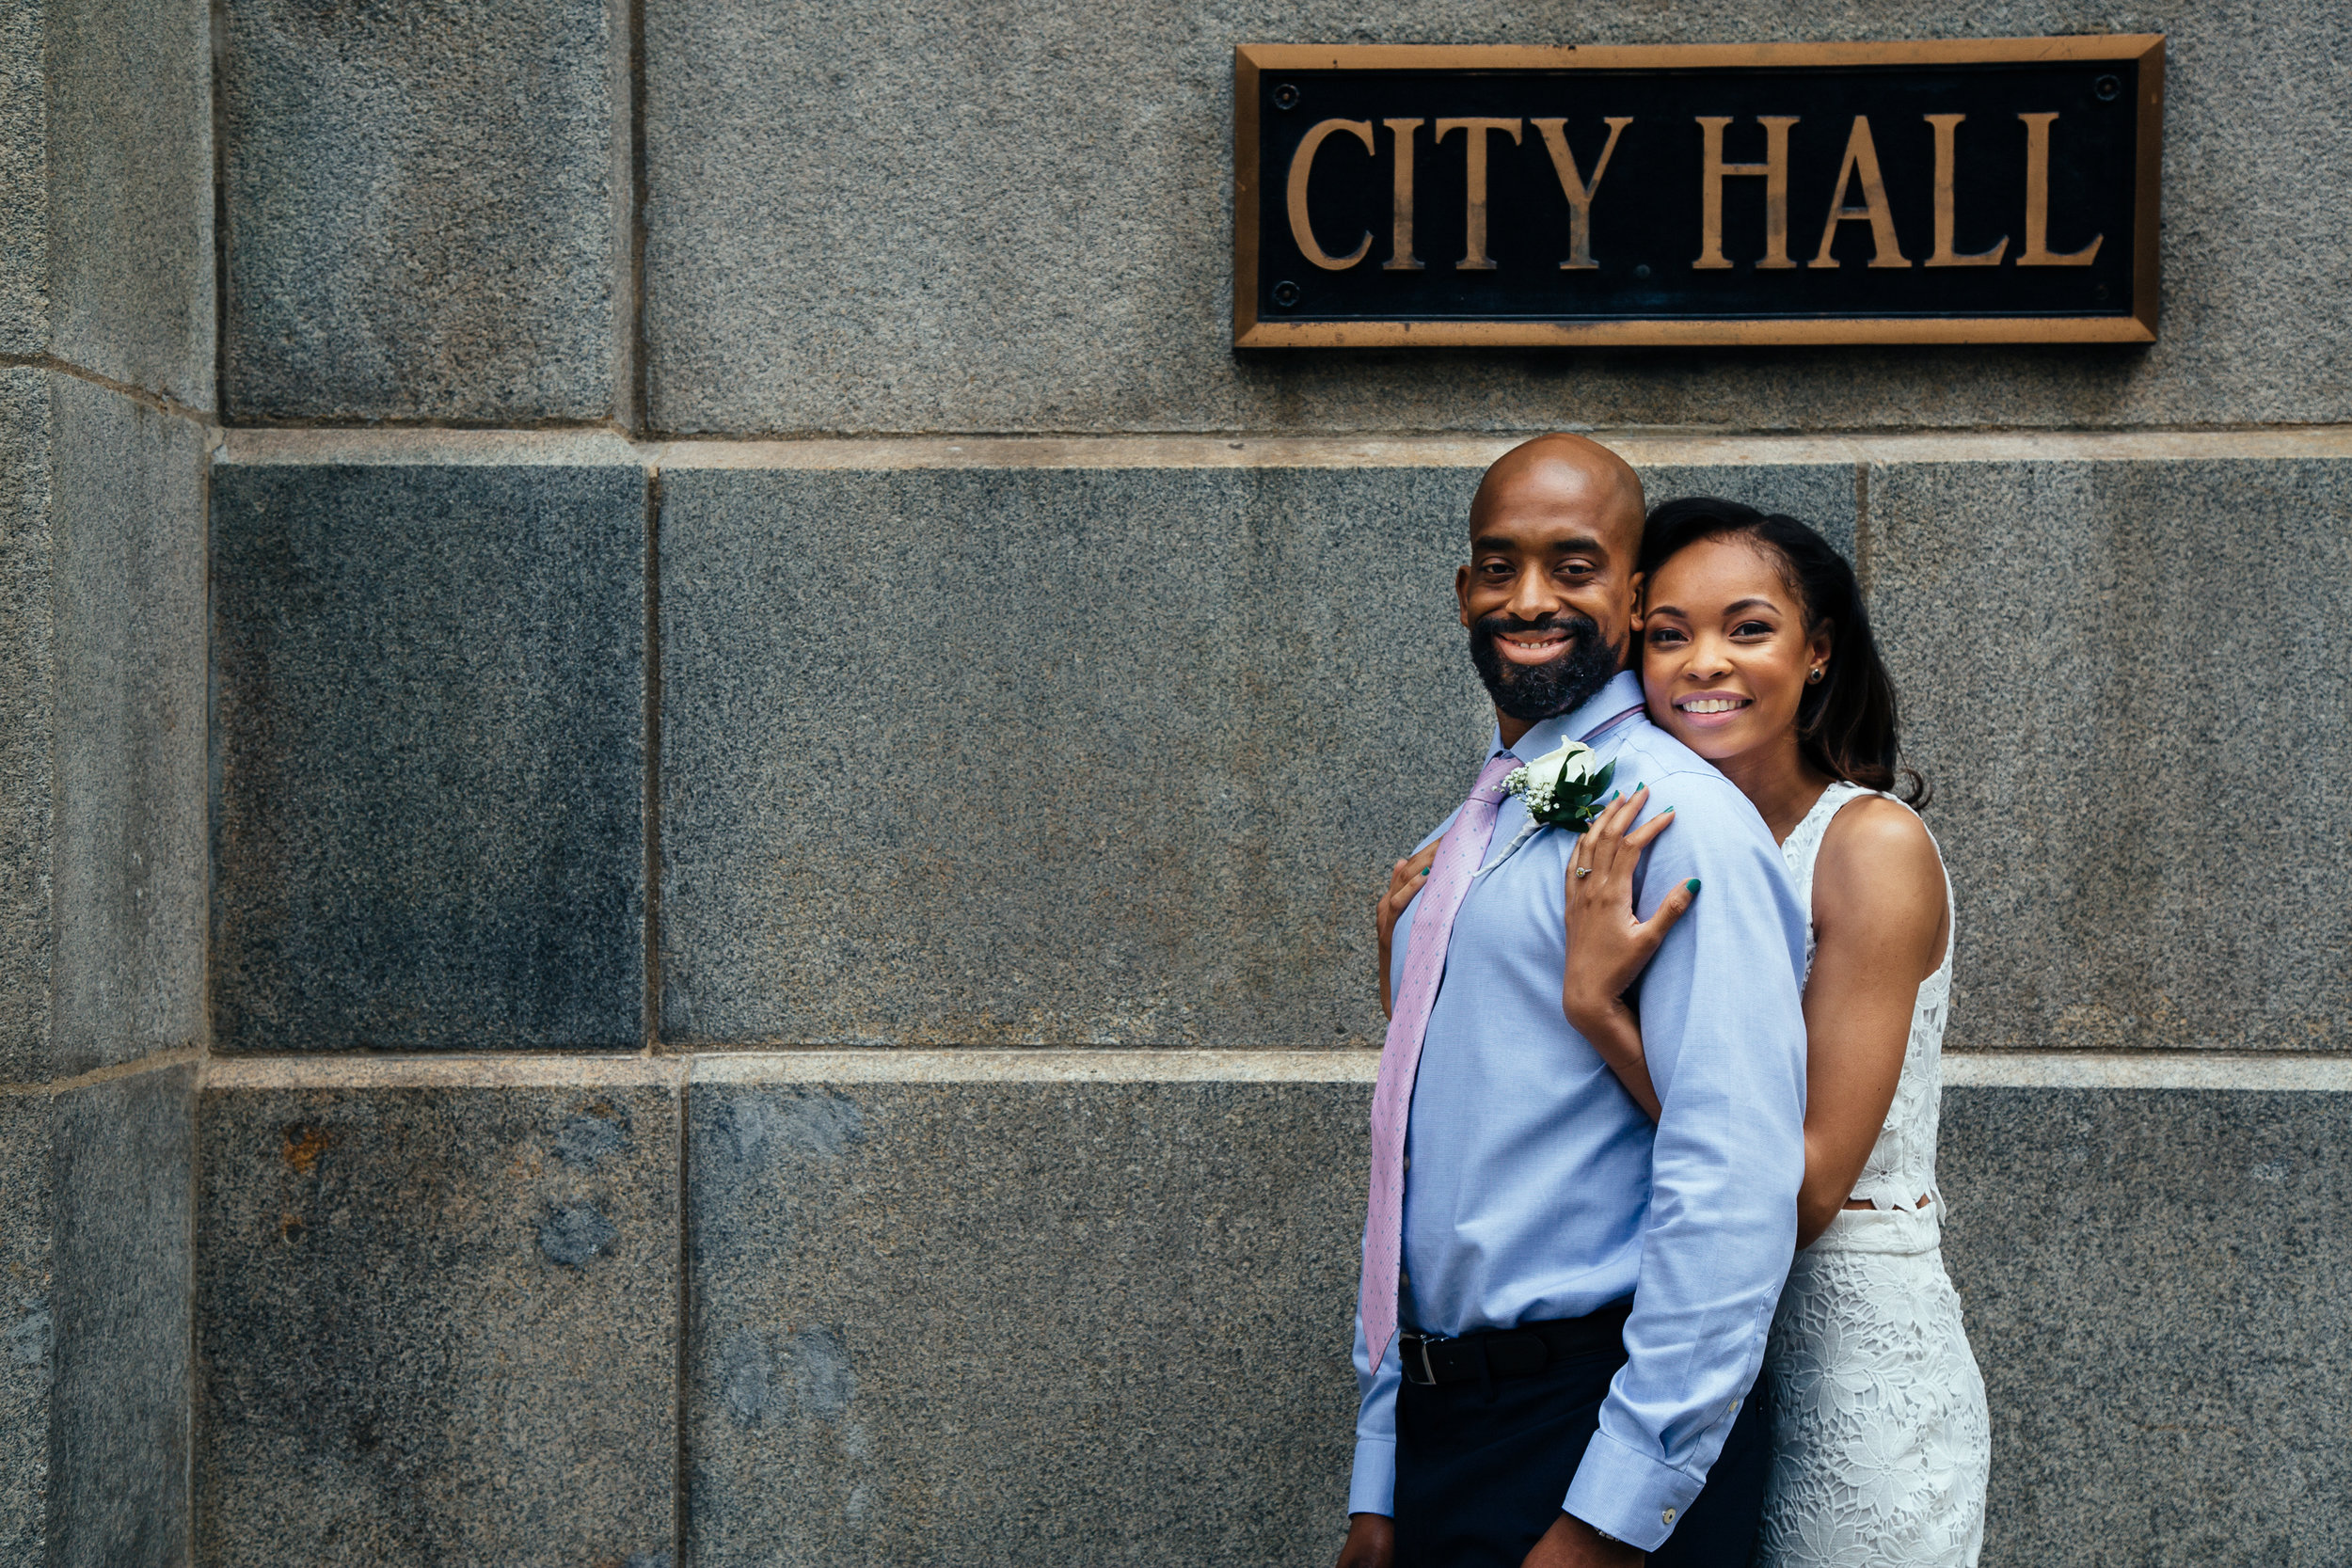 chicago_elopement_tony_brittany-2.jpg